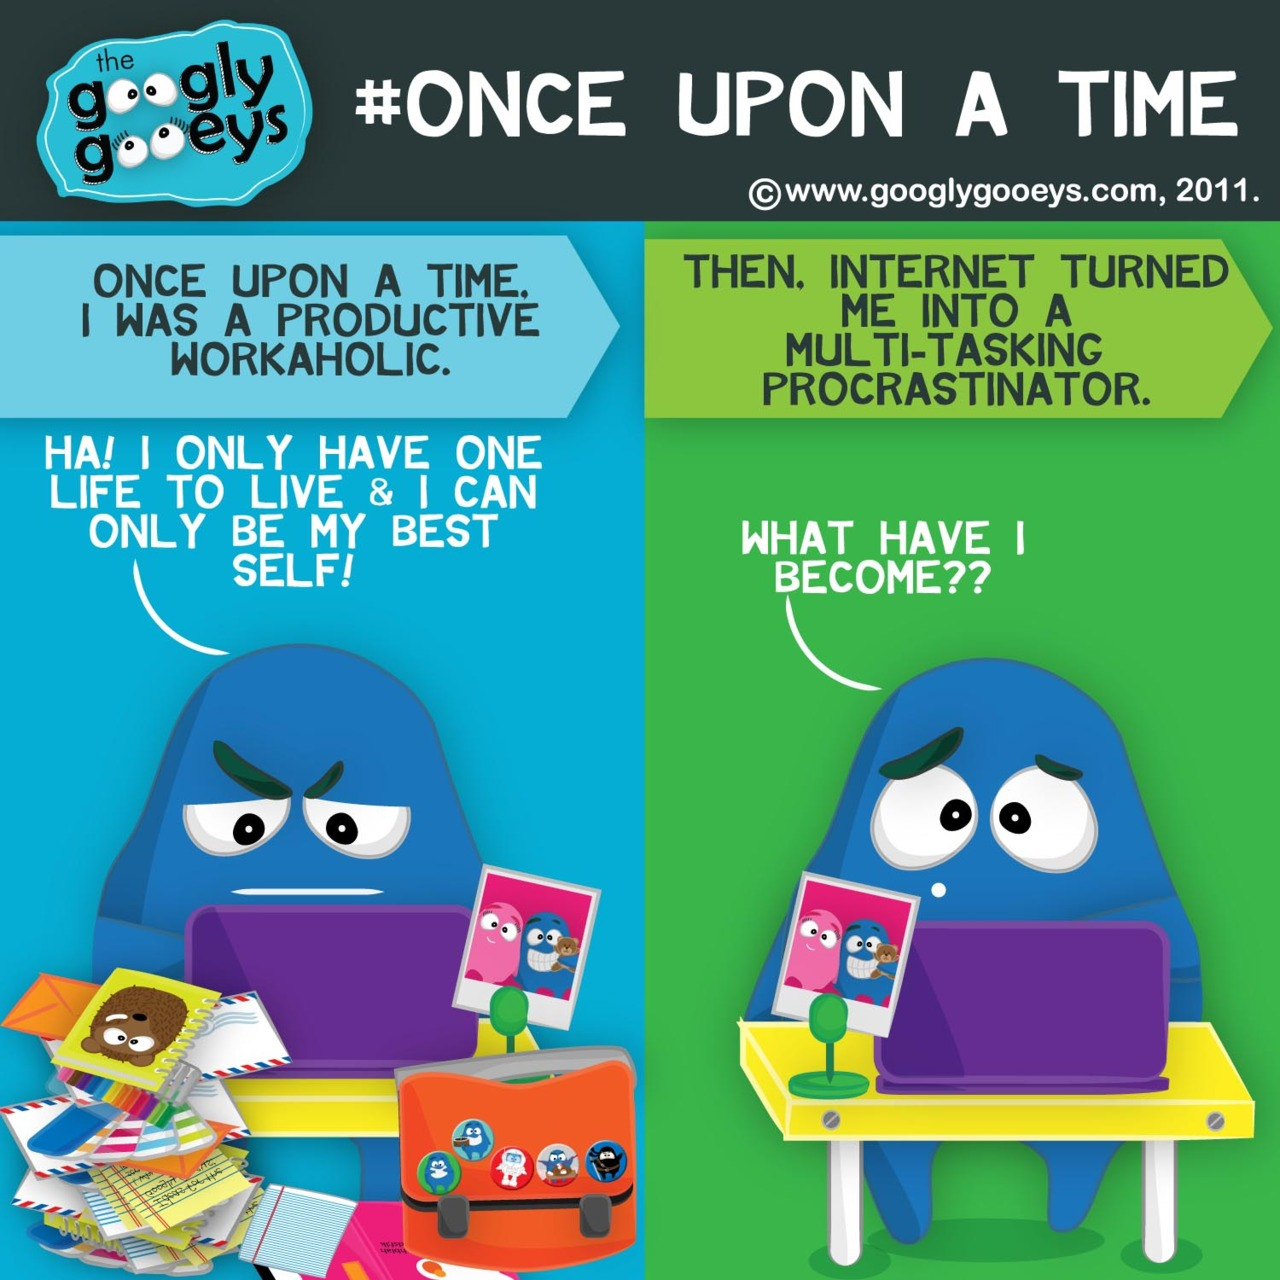 #onceuponatime I was a productive workaholic. Then, the internet turned me into a multi-tasking proc